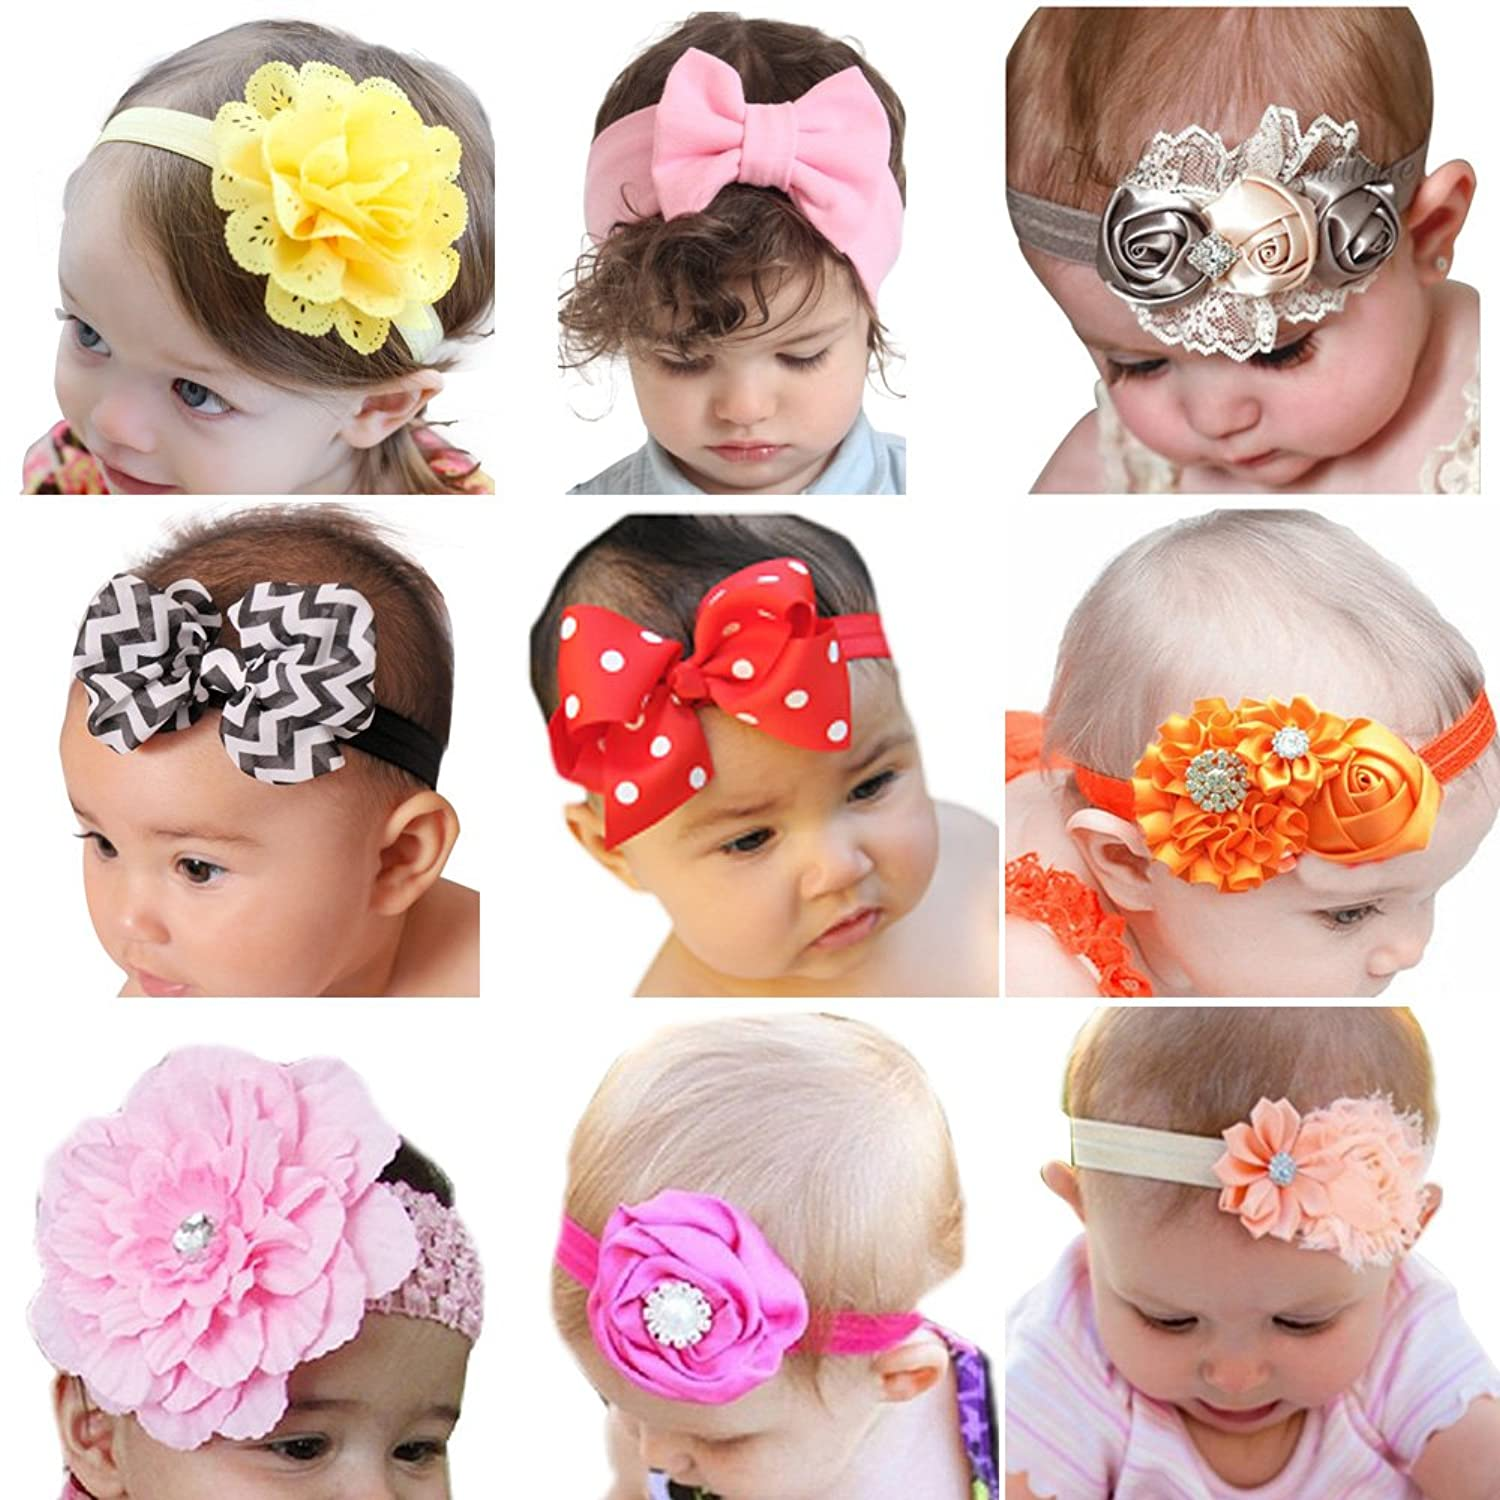 Lovely Modern Baby Knitting Infant Kids Girl Button Hairband Phtography Props For Adjustable 15 3 Months To 4 Years Old Baby